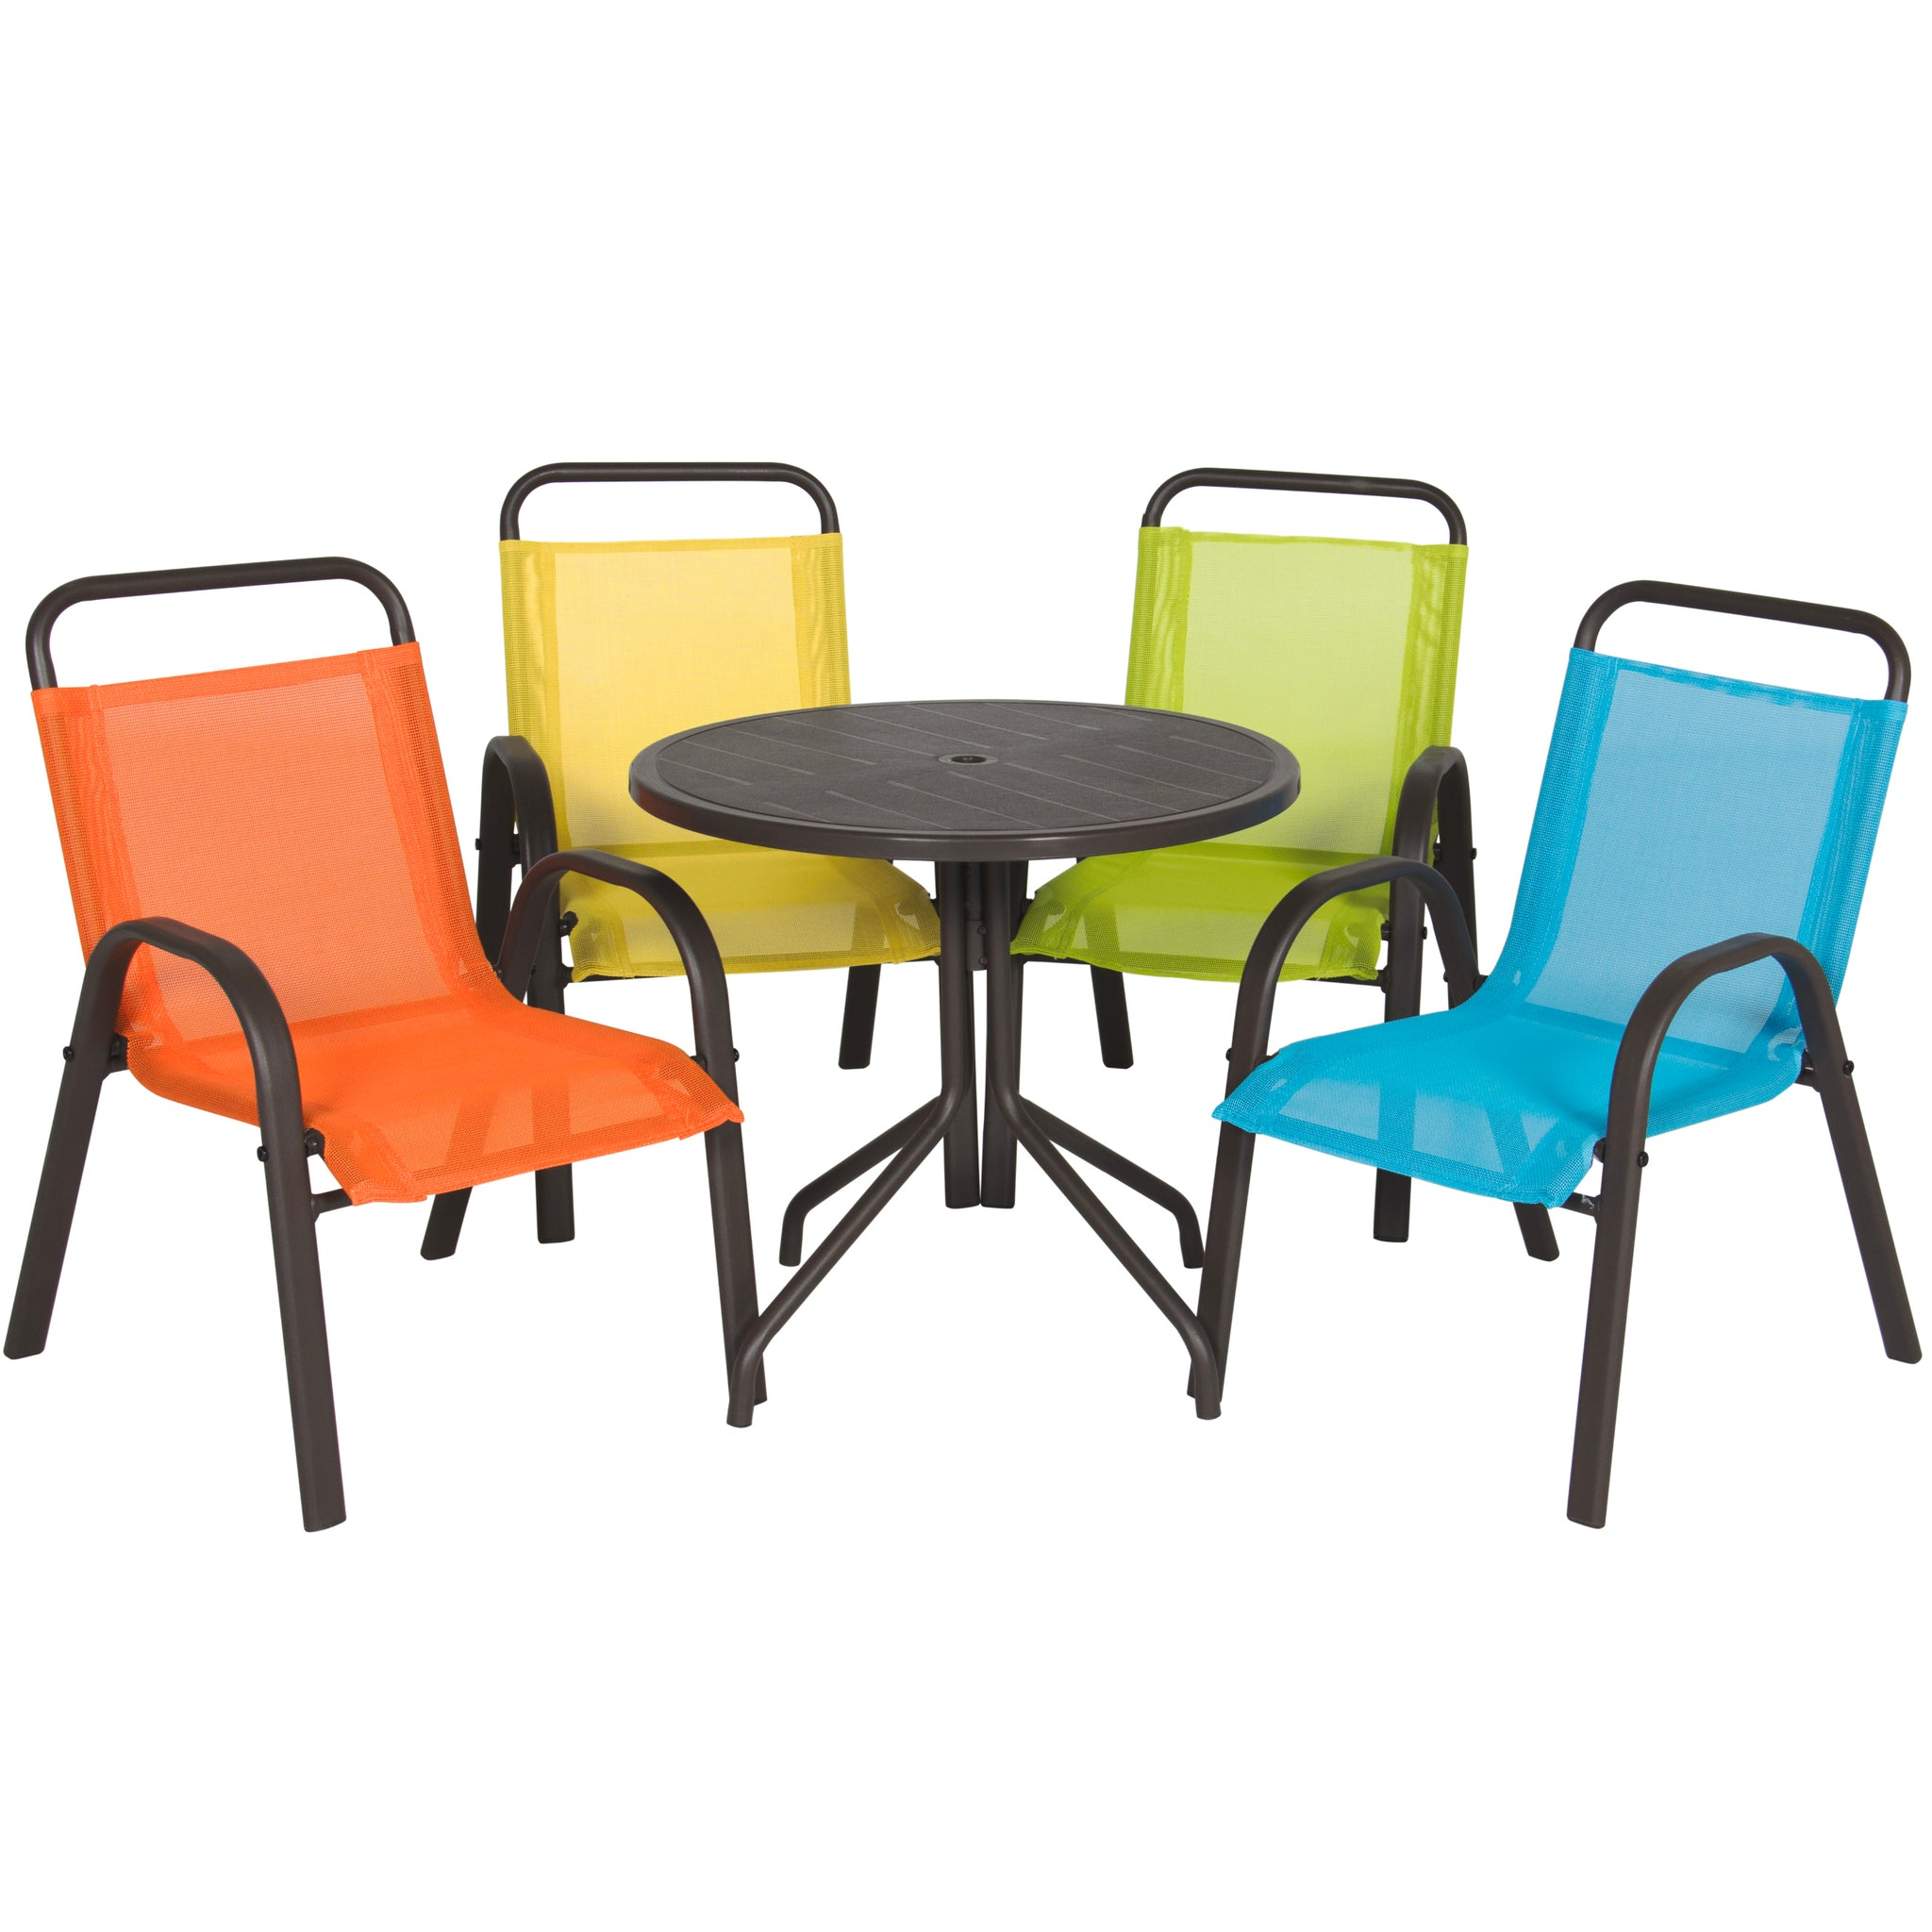 Set Of 5 Kids Dining Chairs W/ Table   Multicolor